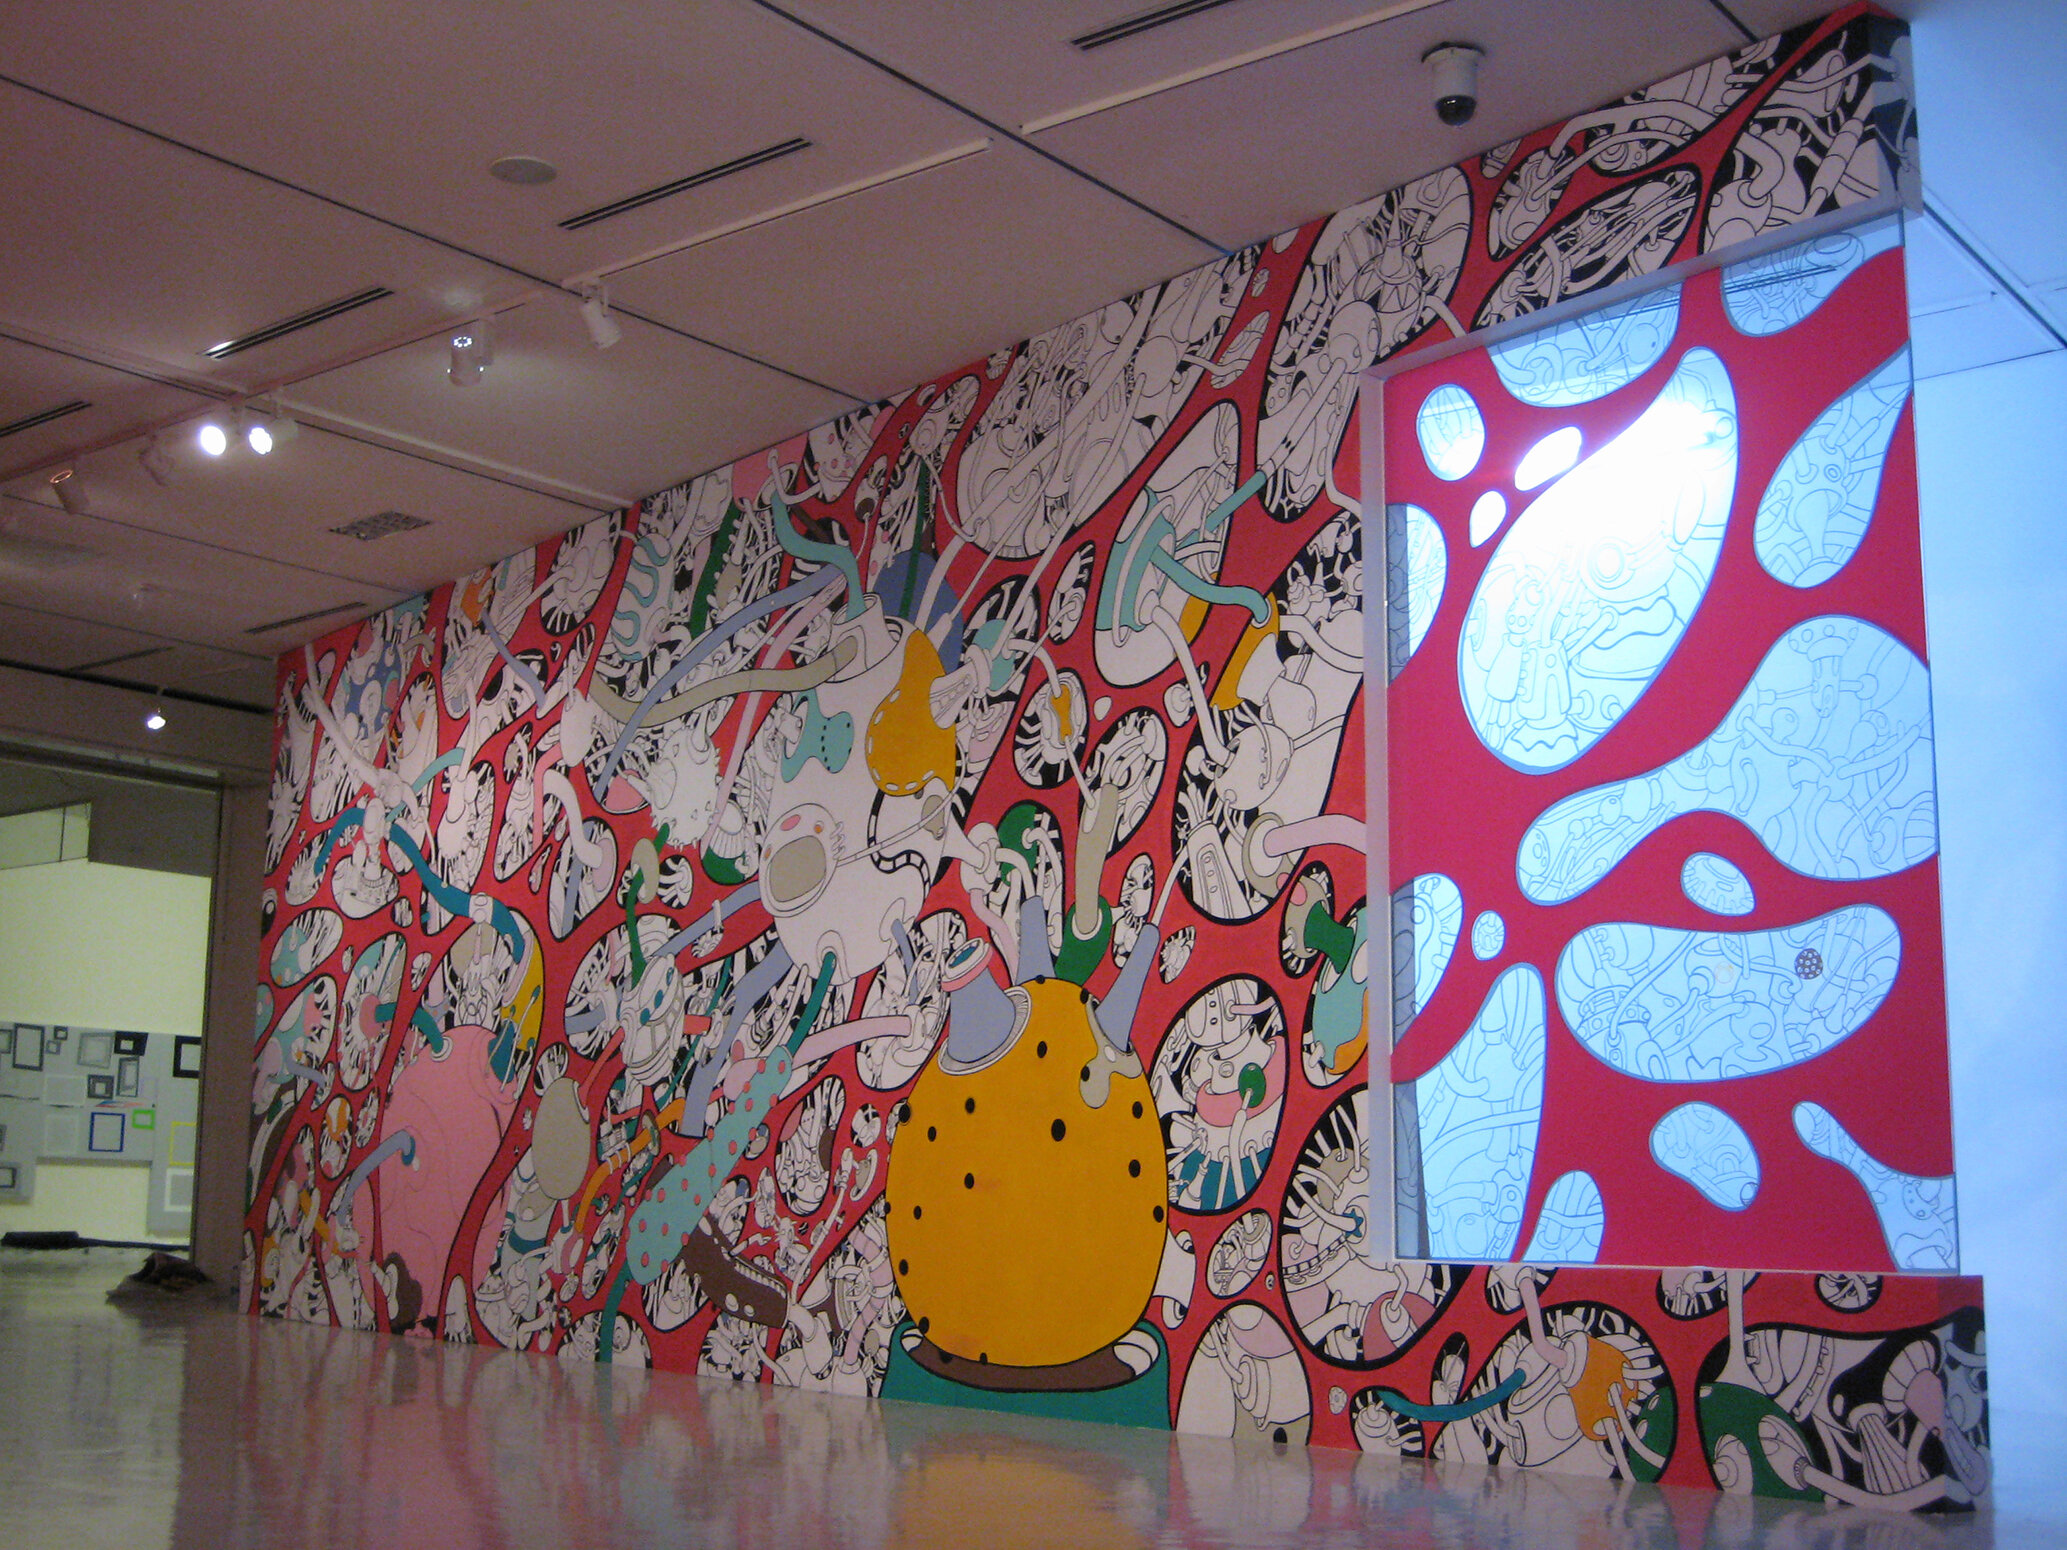 Device through the space1_ 1400 X 400cm Painting on the Wall 2007_1.jpg